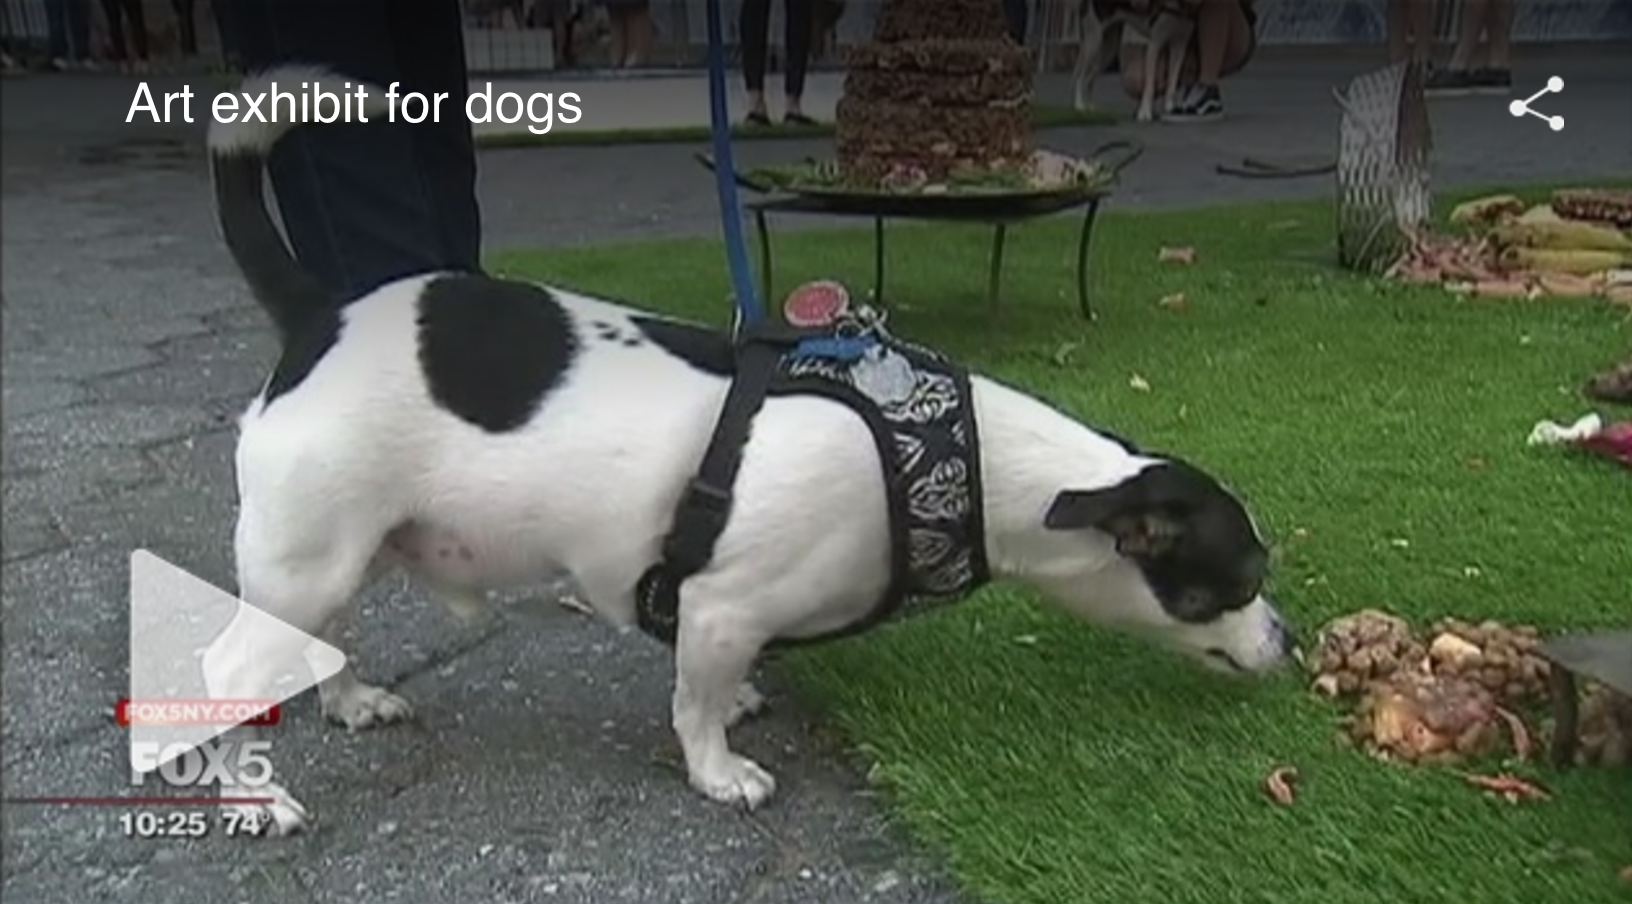 NEW YORK (FOX 5 NEWS) - Interactive art installation for dogs